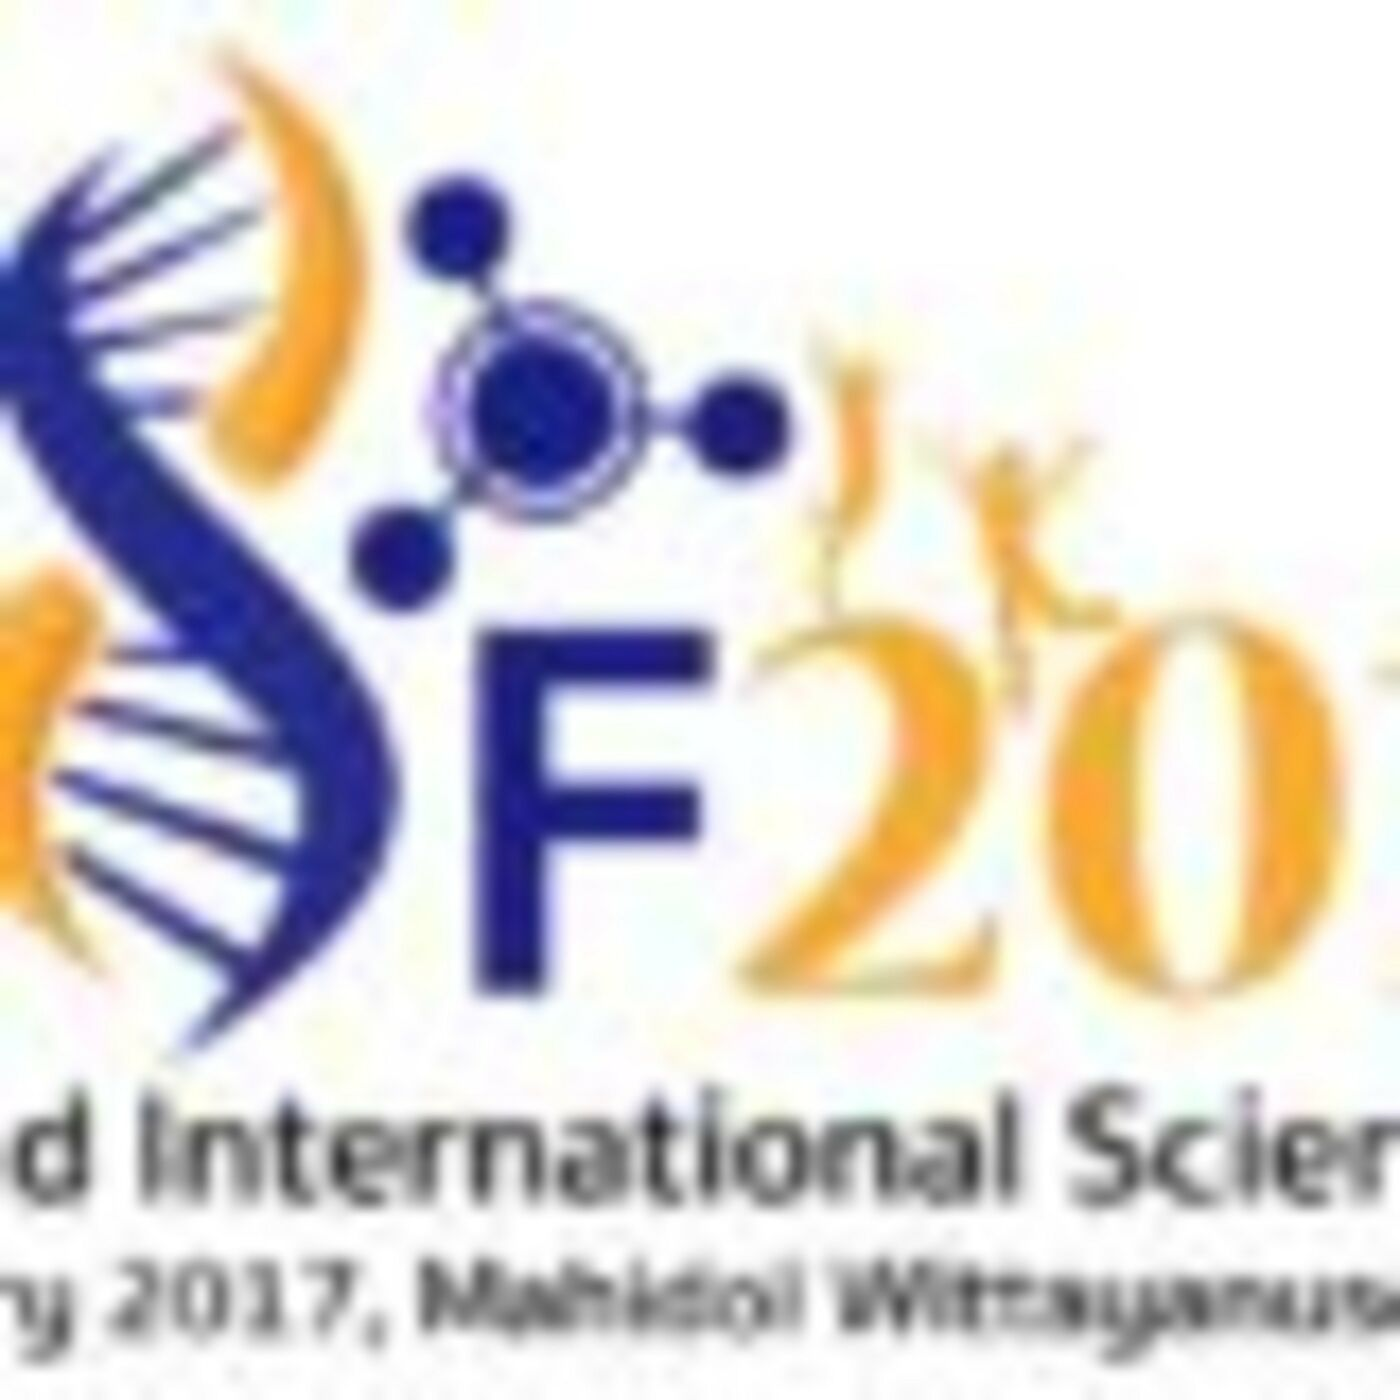 Thailand International Science Fair 2017